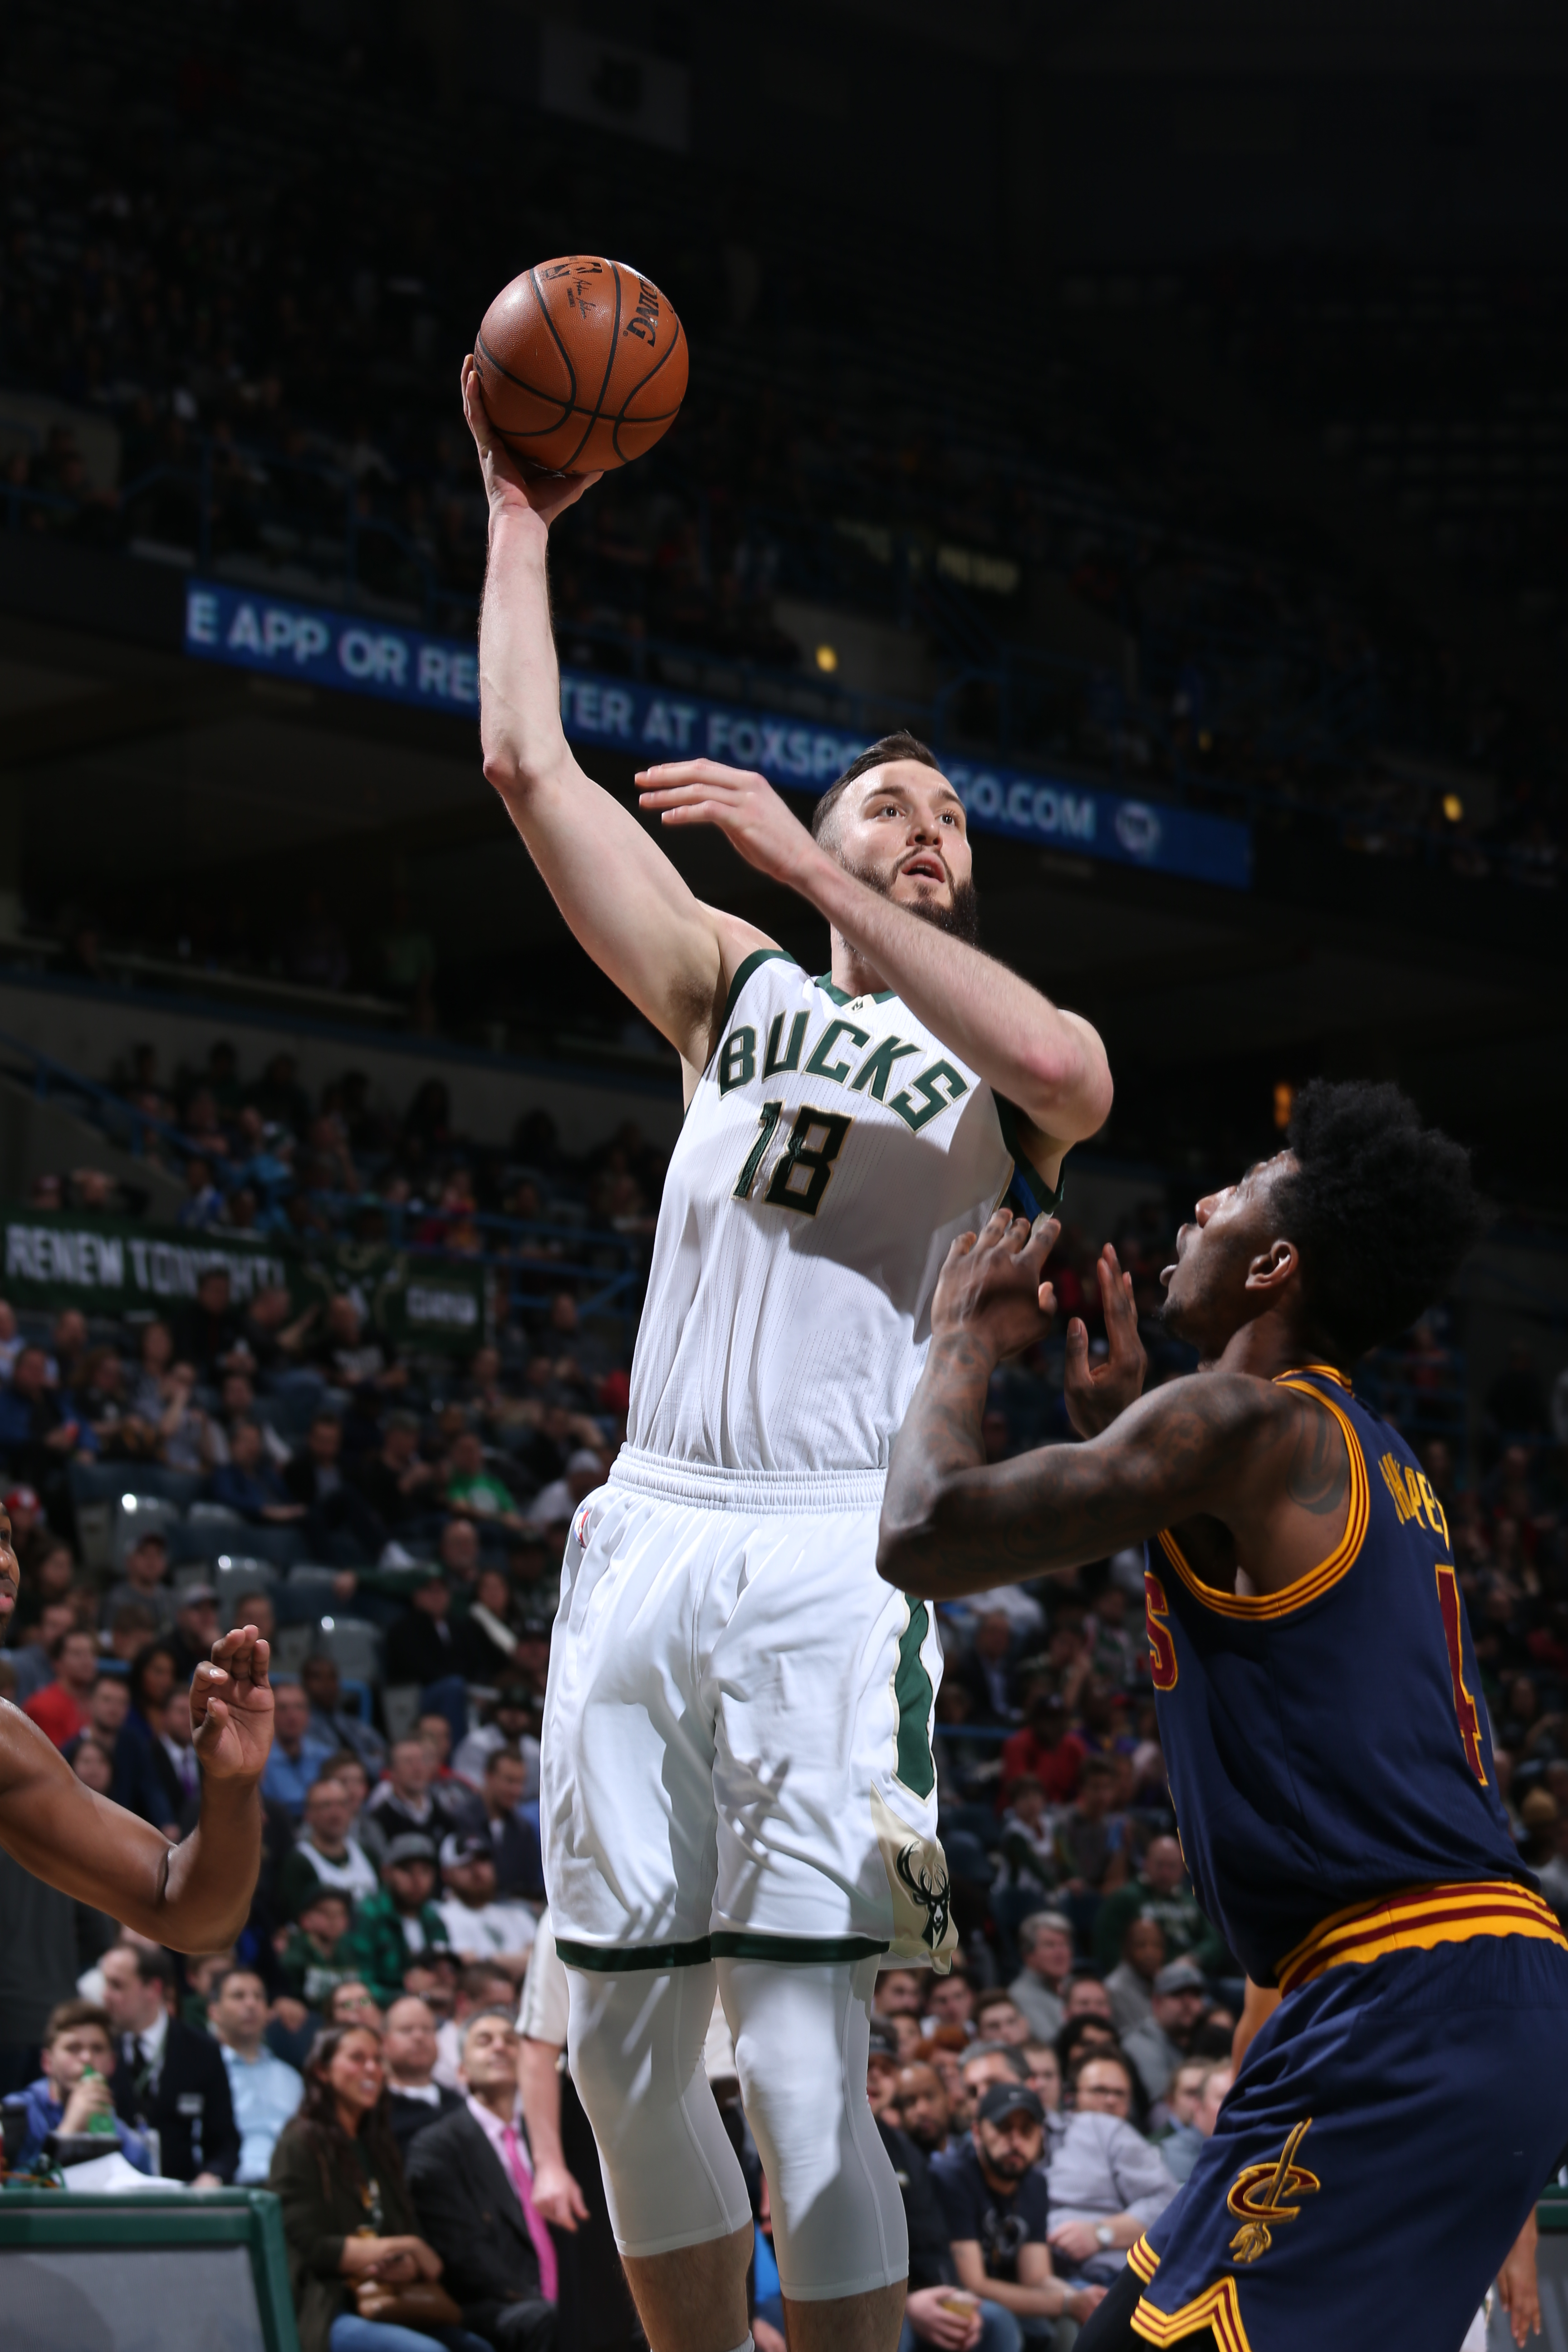 MILWAUKEE, WI - APRIL 5:  Miles Plumlee #18 of the Milwaukee Bucks shoots against the Cleveland Cavaliers on April 5, 2016 at the BMO Harris Bradley Center in Milwaukee, Wisconsin. (Photo by Gary Dineen/NBAE via Getty Images)